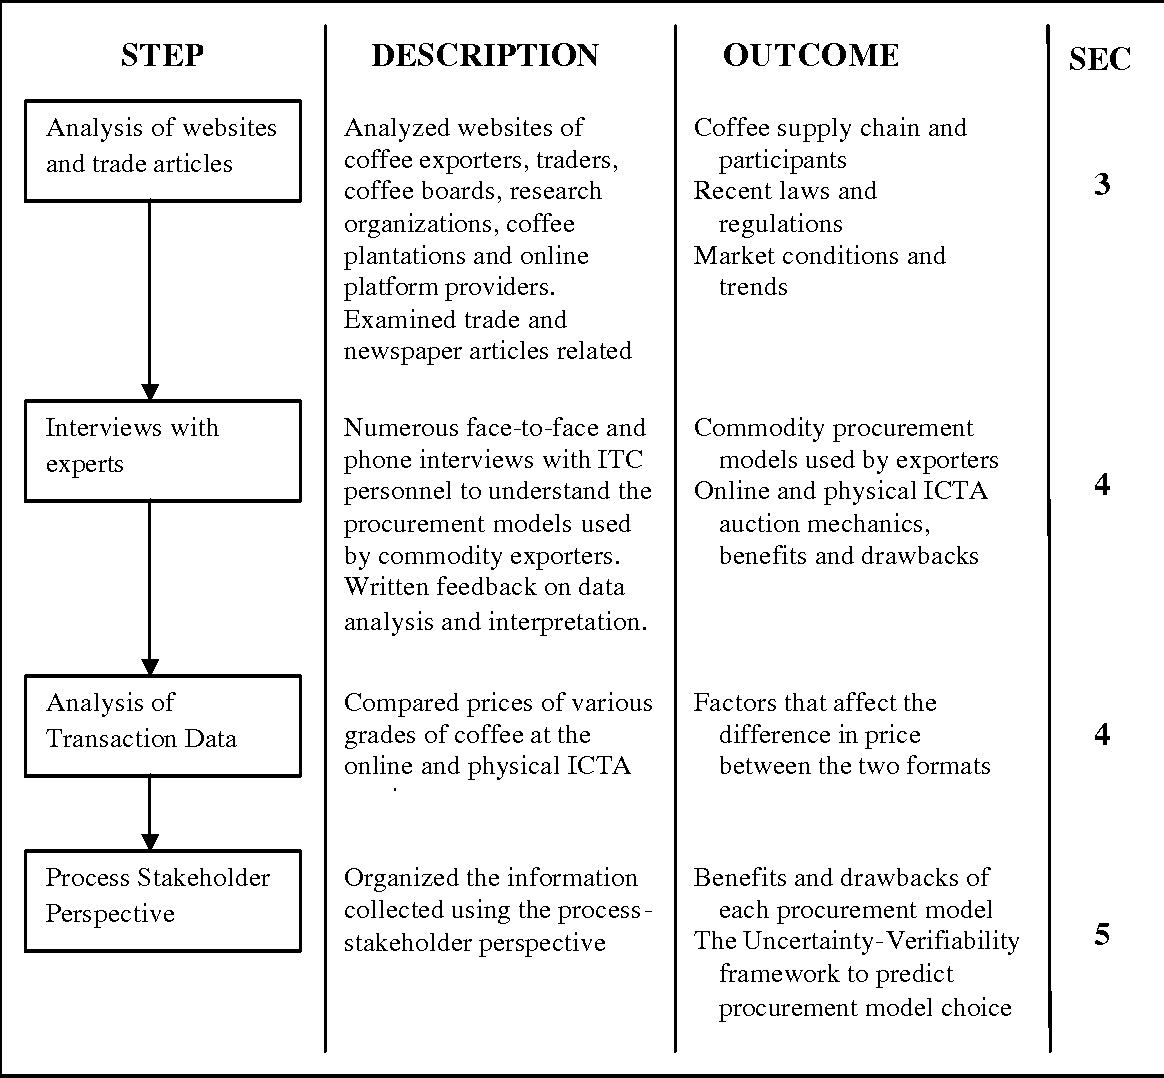 Pdf Procurement Models In The Agricultural Supply Chain A Case Study Of Online Coffee Auctions In India Semantic Scholar